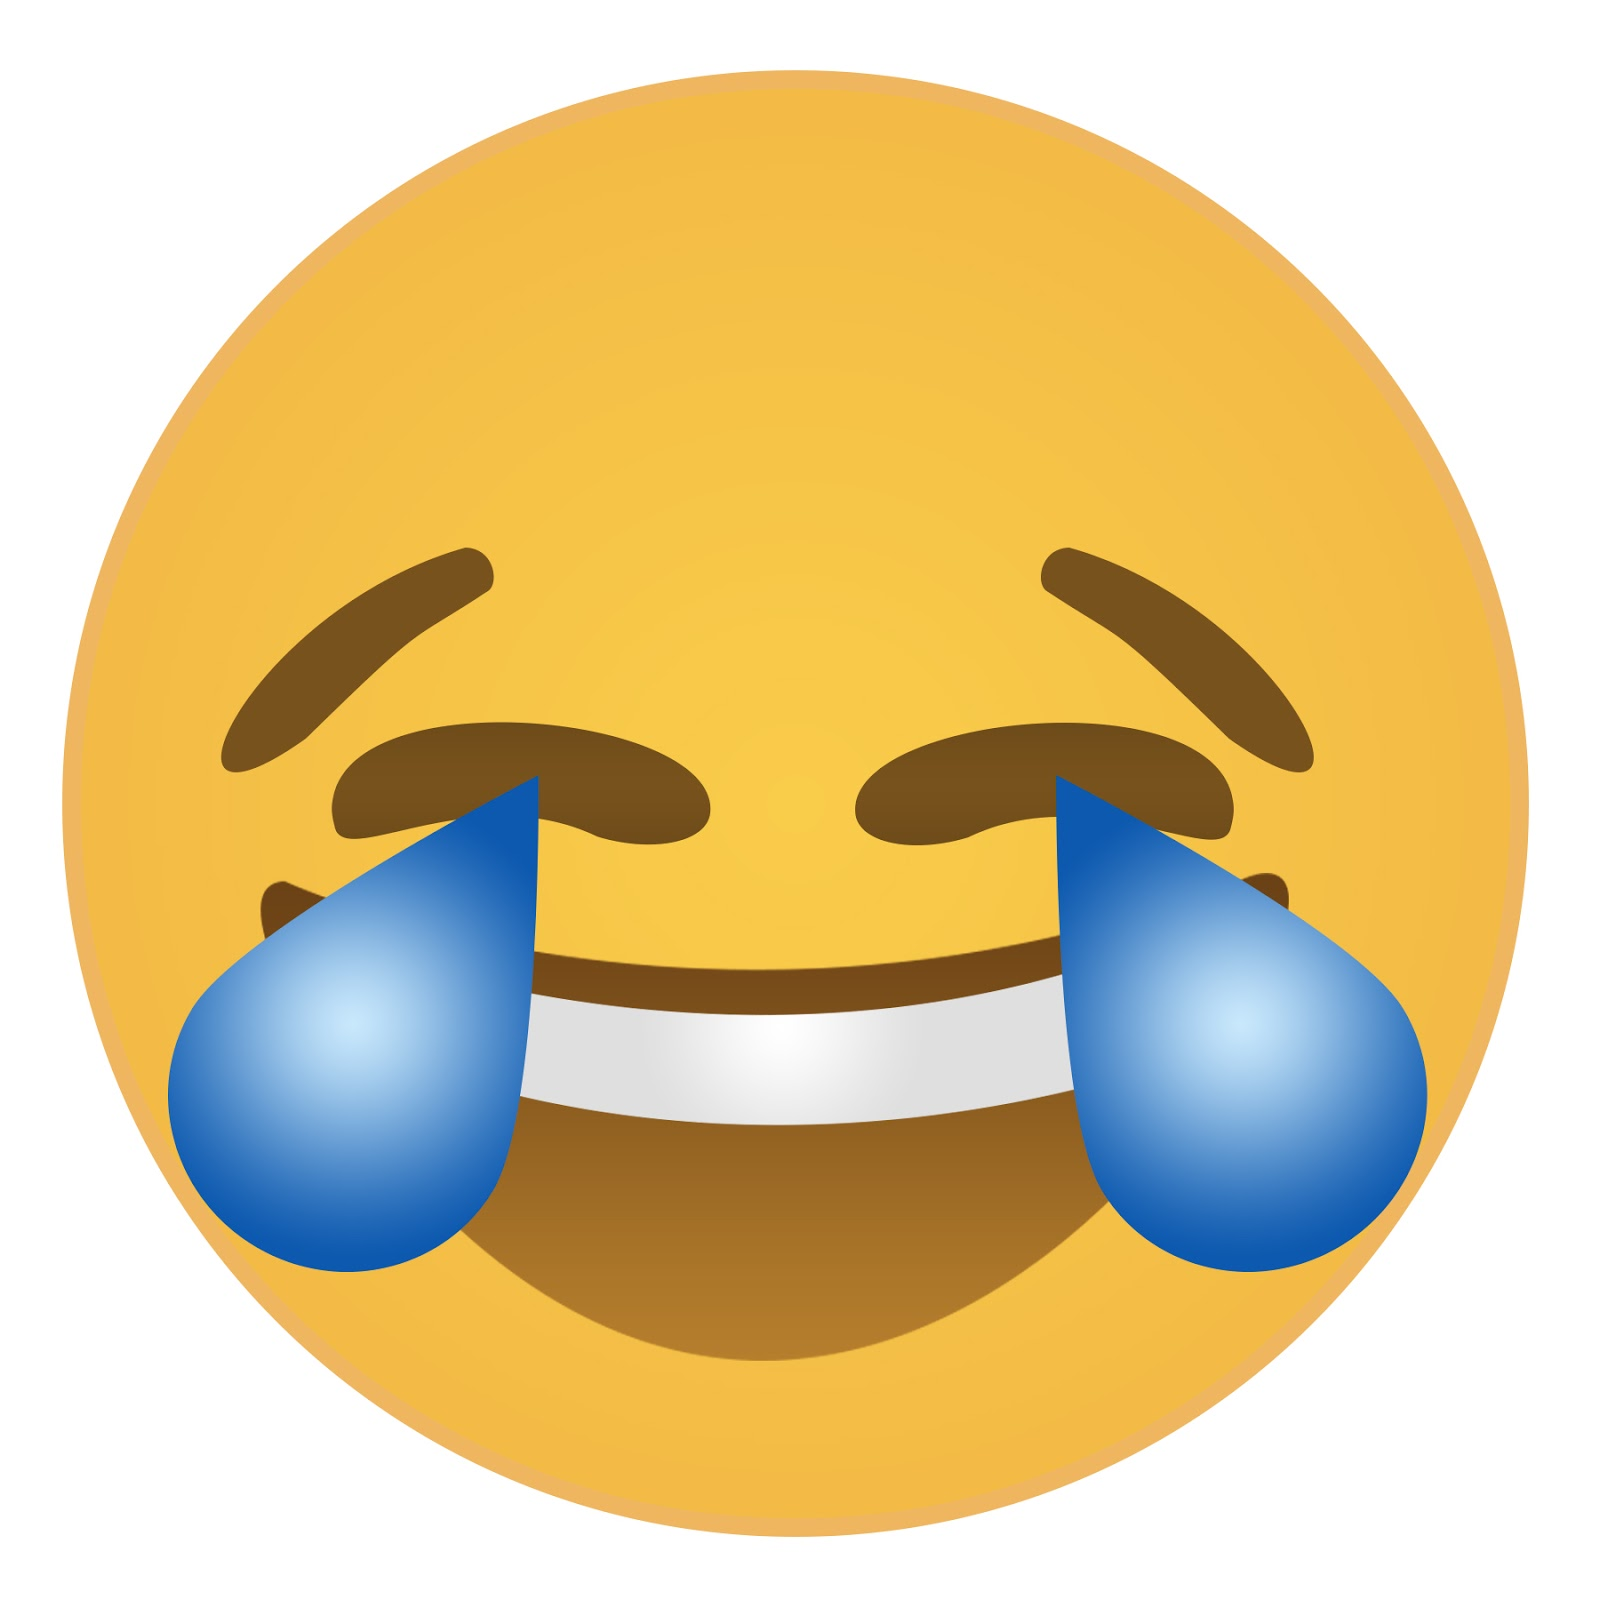 It is a graphic of Crush Emoji Pictures to Print